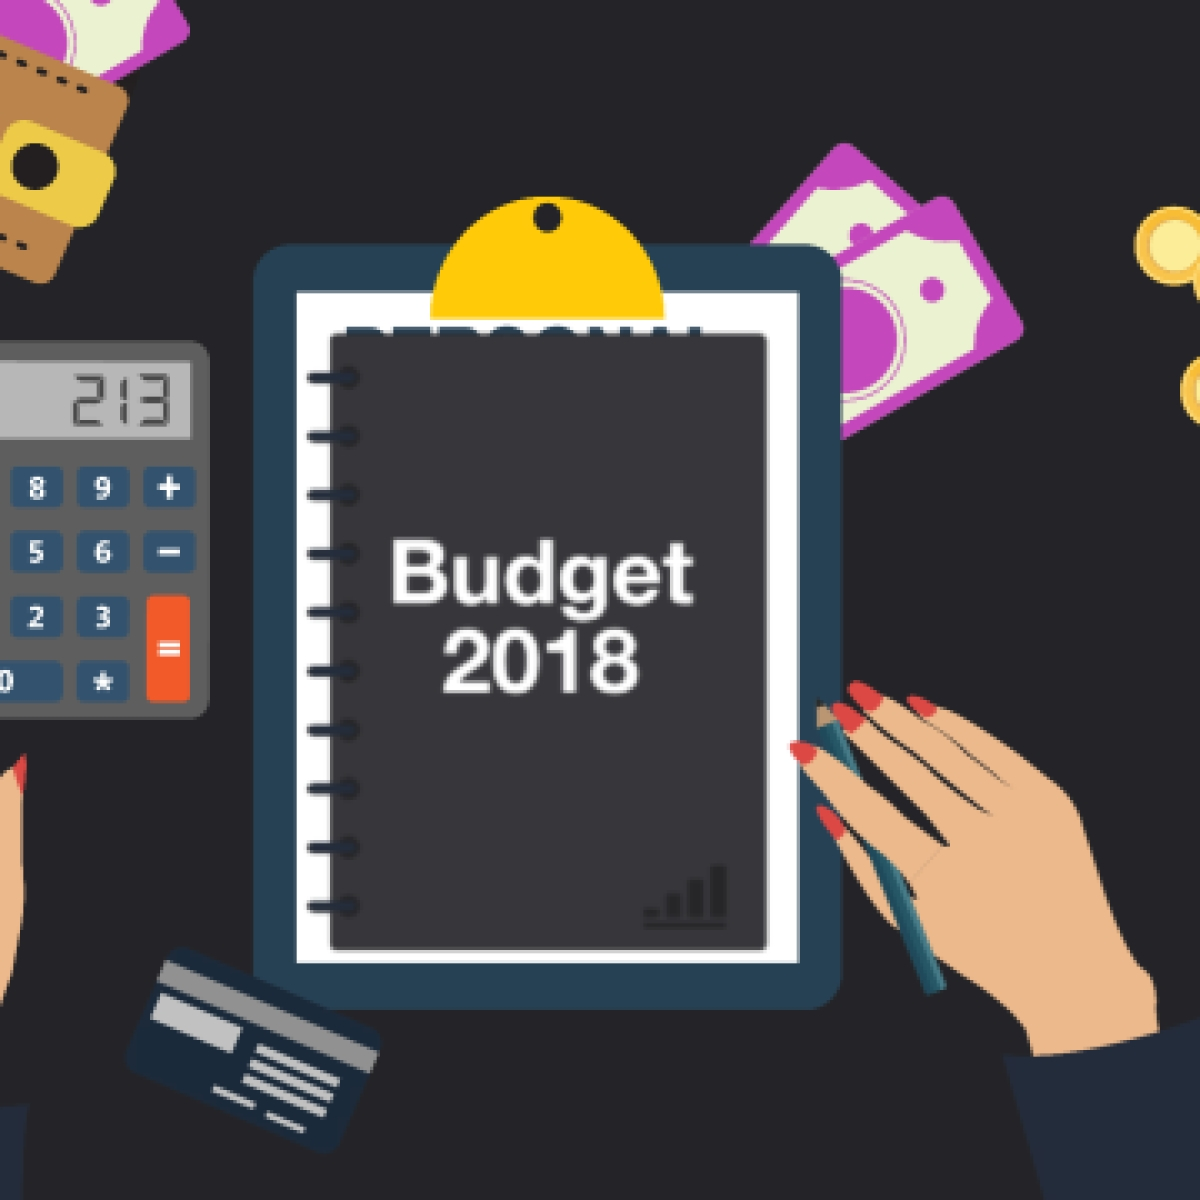 The Big Numbers You'll Want To Watch Out For In The Budget